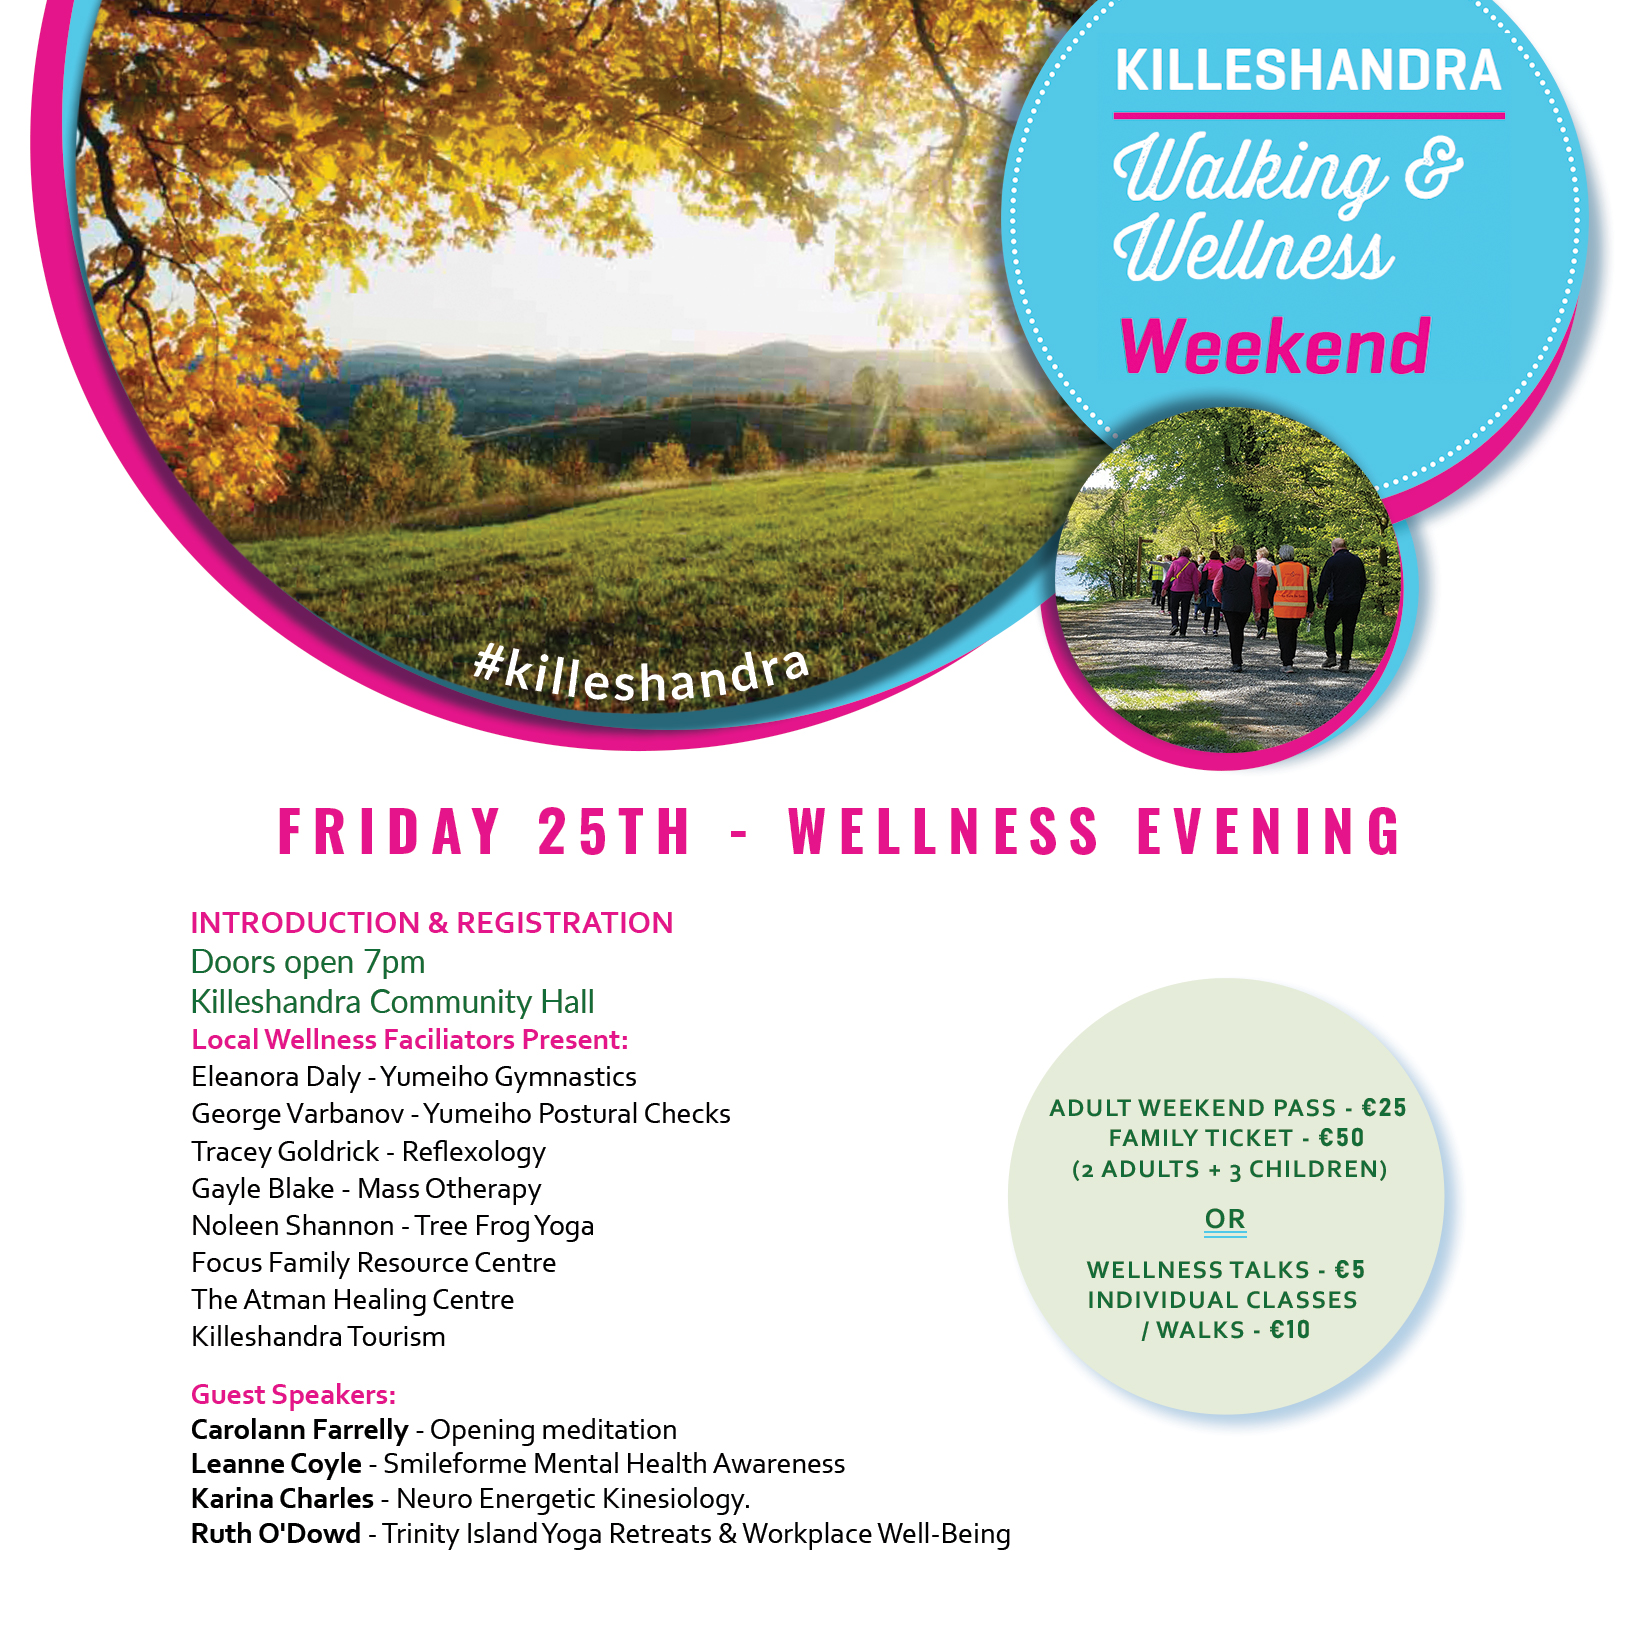 Killeshandra Walking & Wellness Weekend